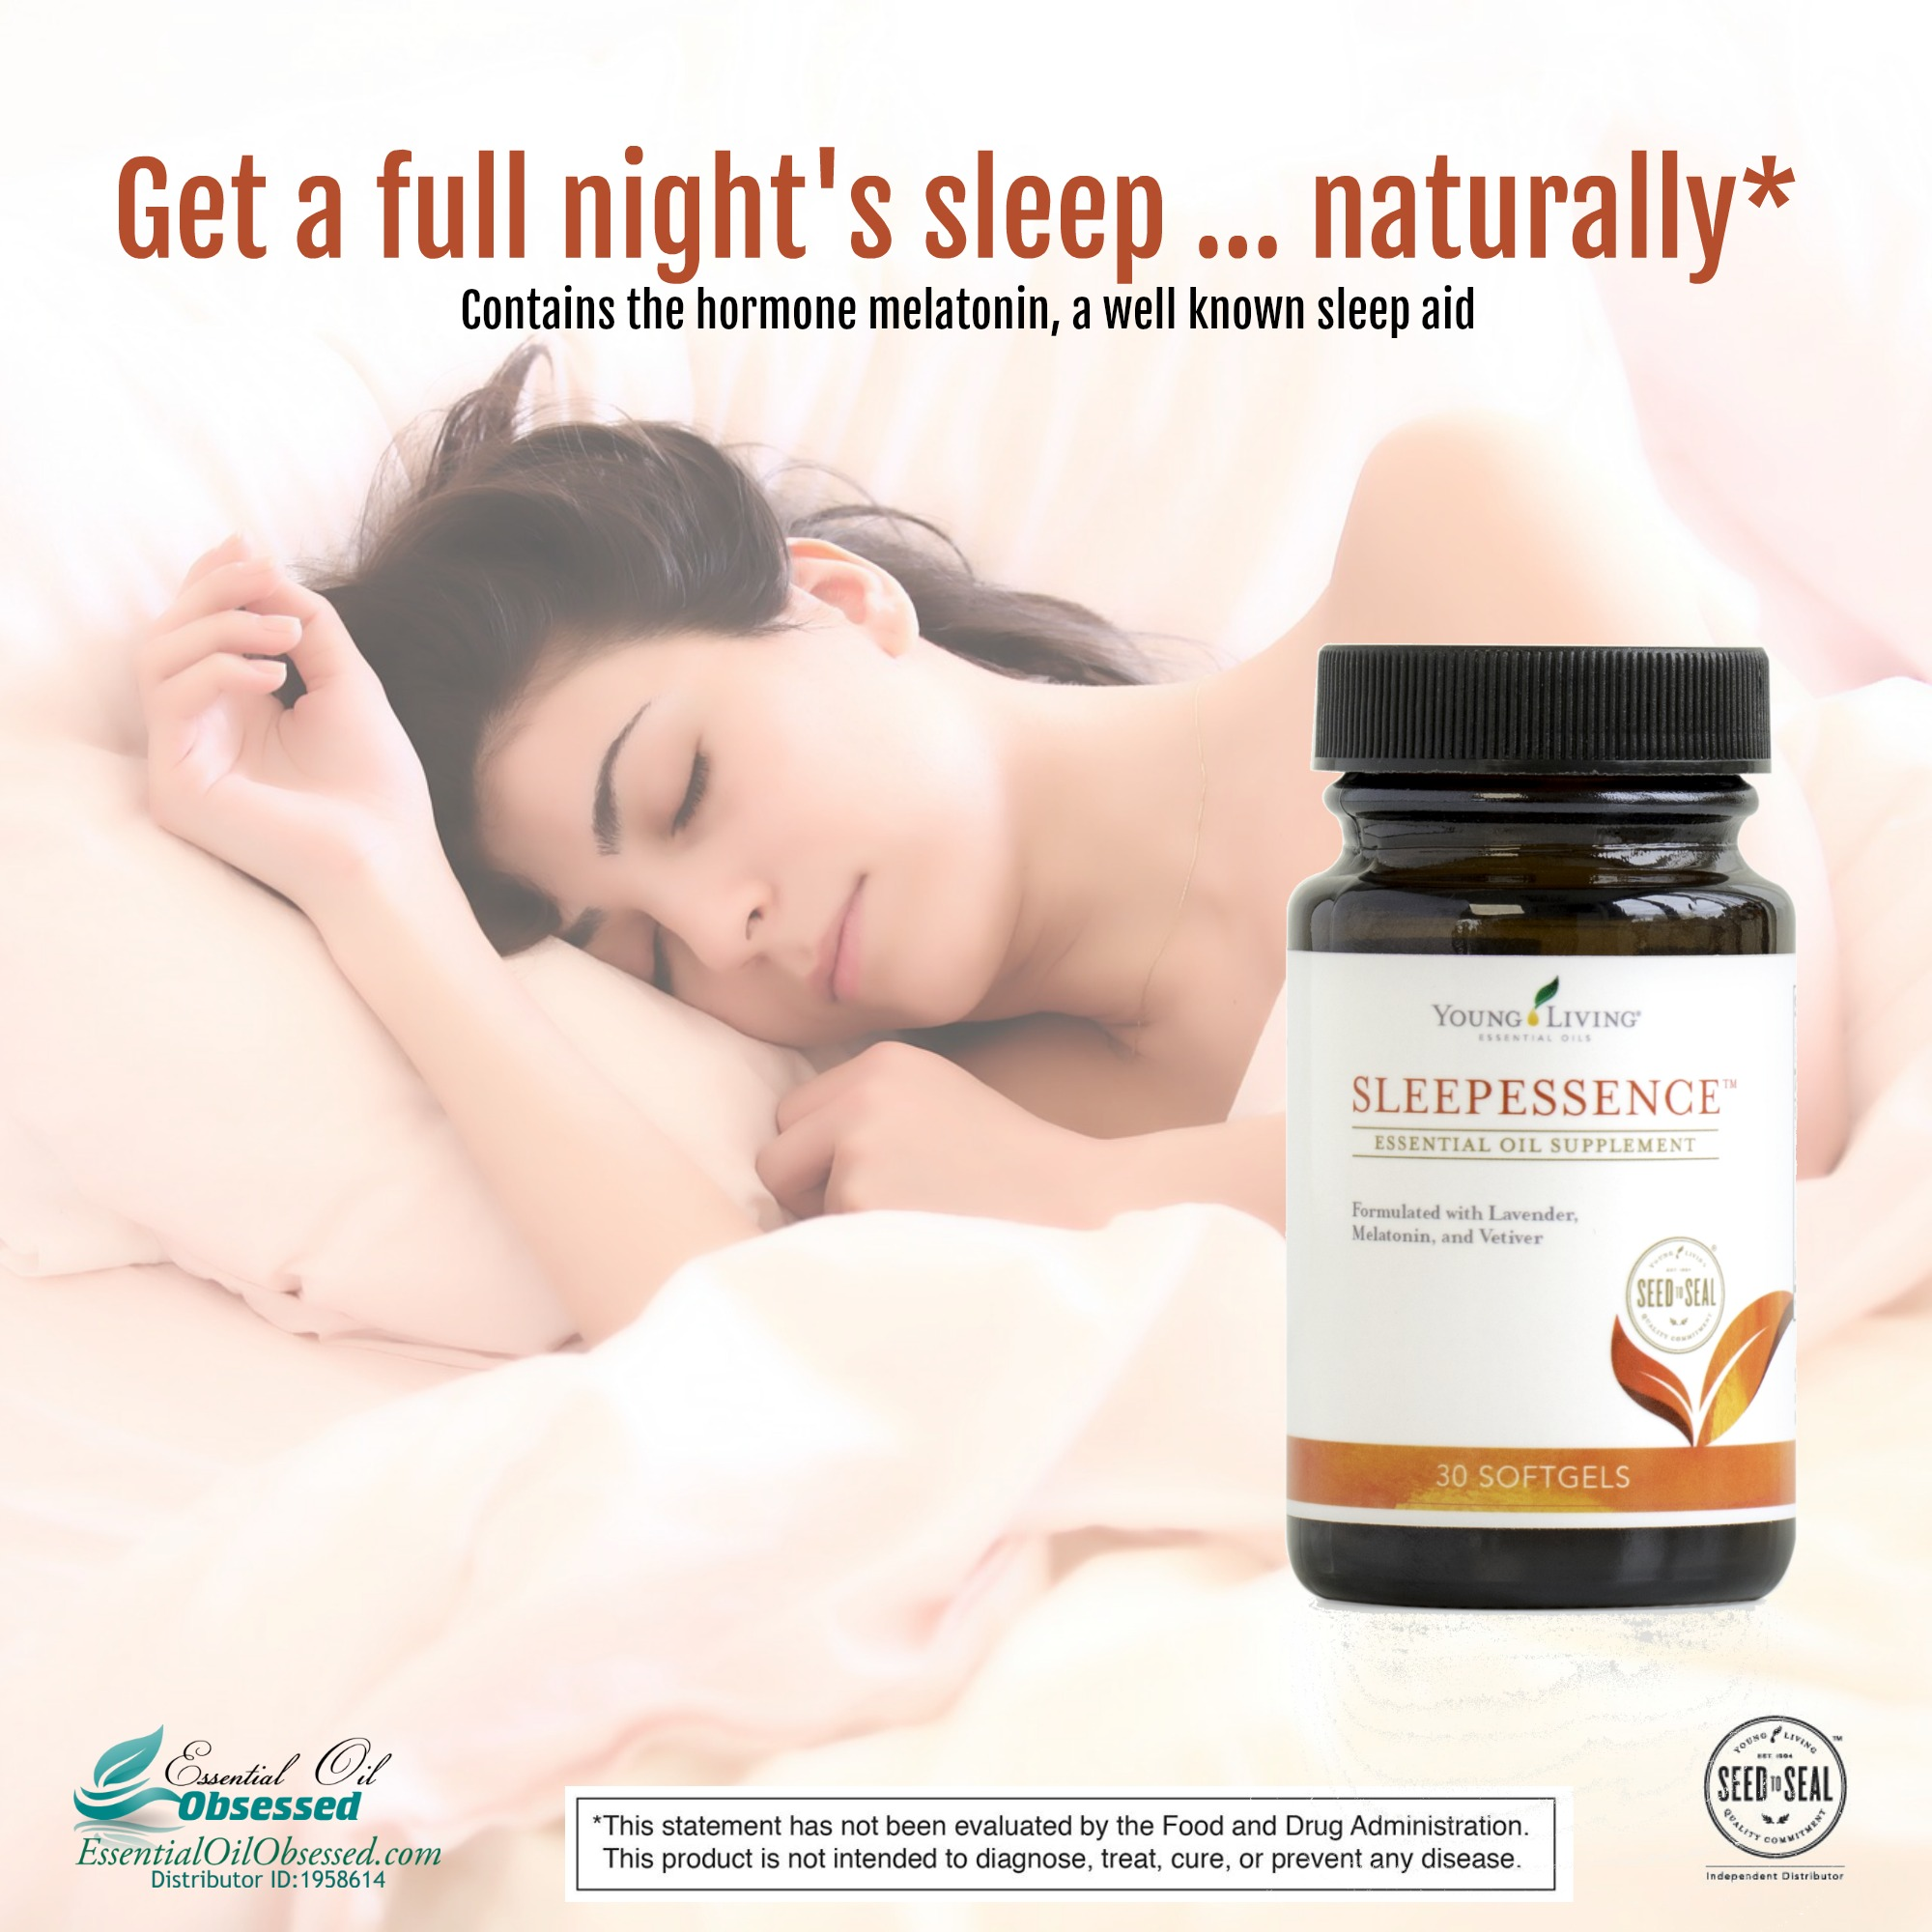 SleepEssence™ essential oil supplement